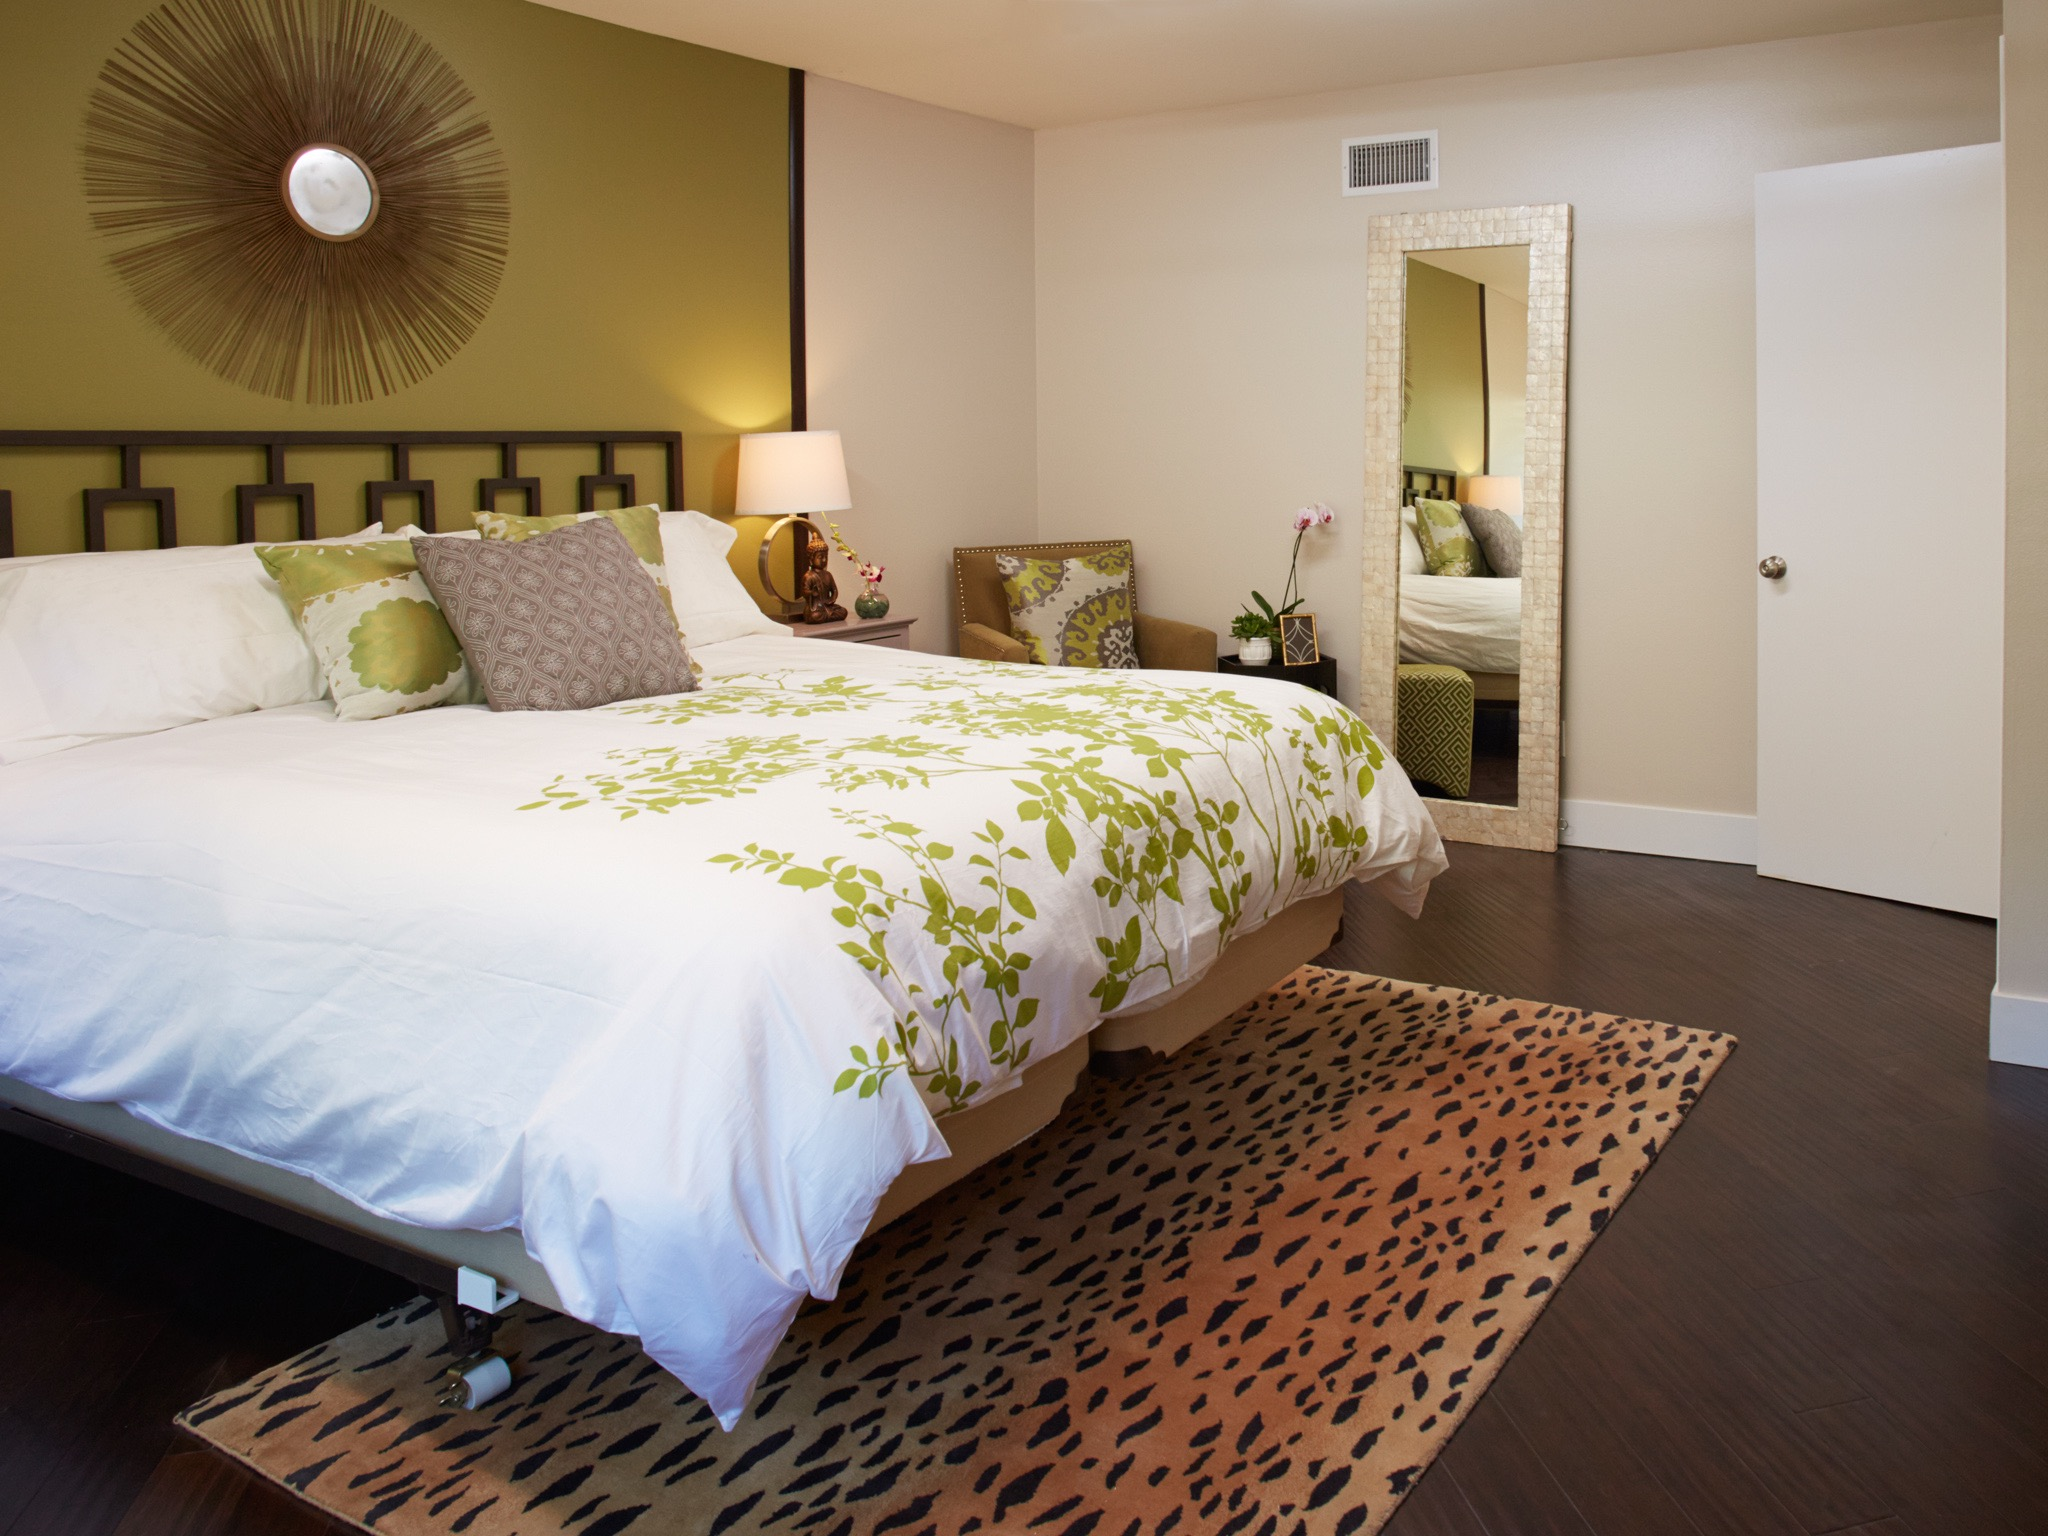 Modern Bedroom With Bamboo Floor (Image 14 of 20)